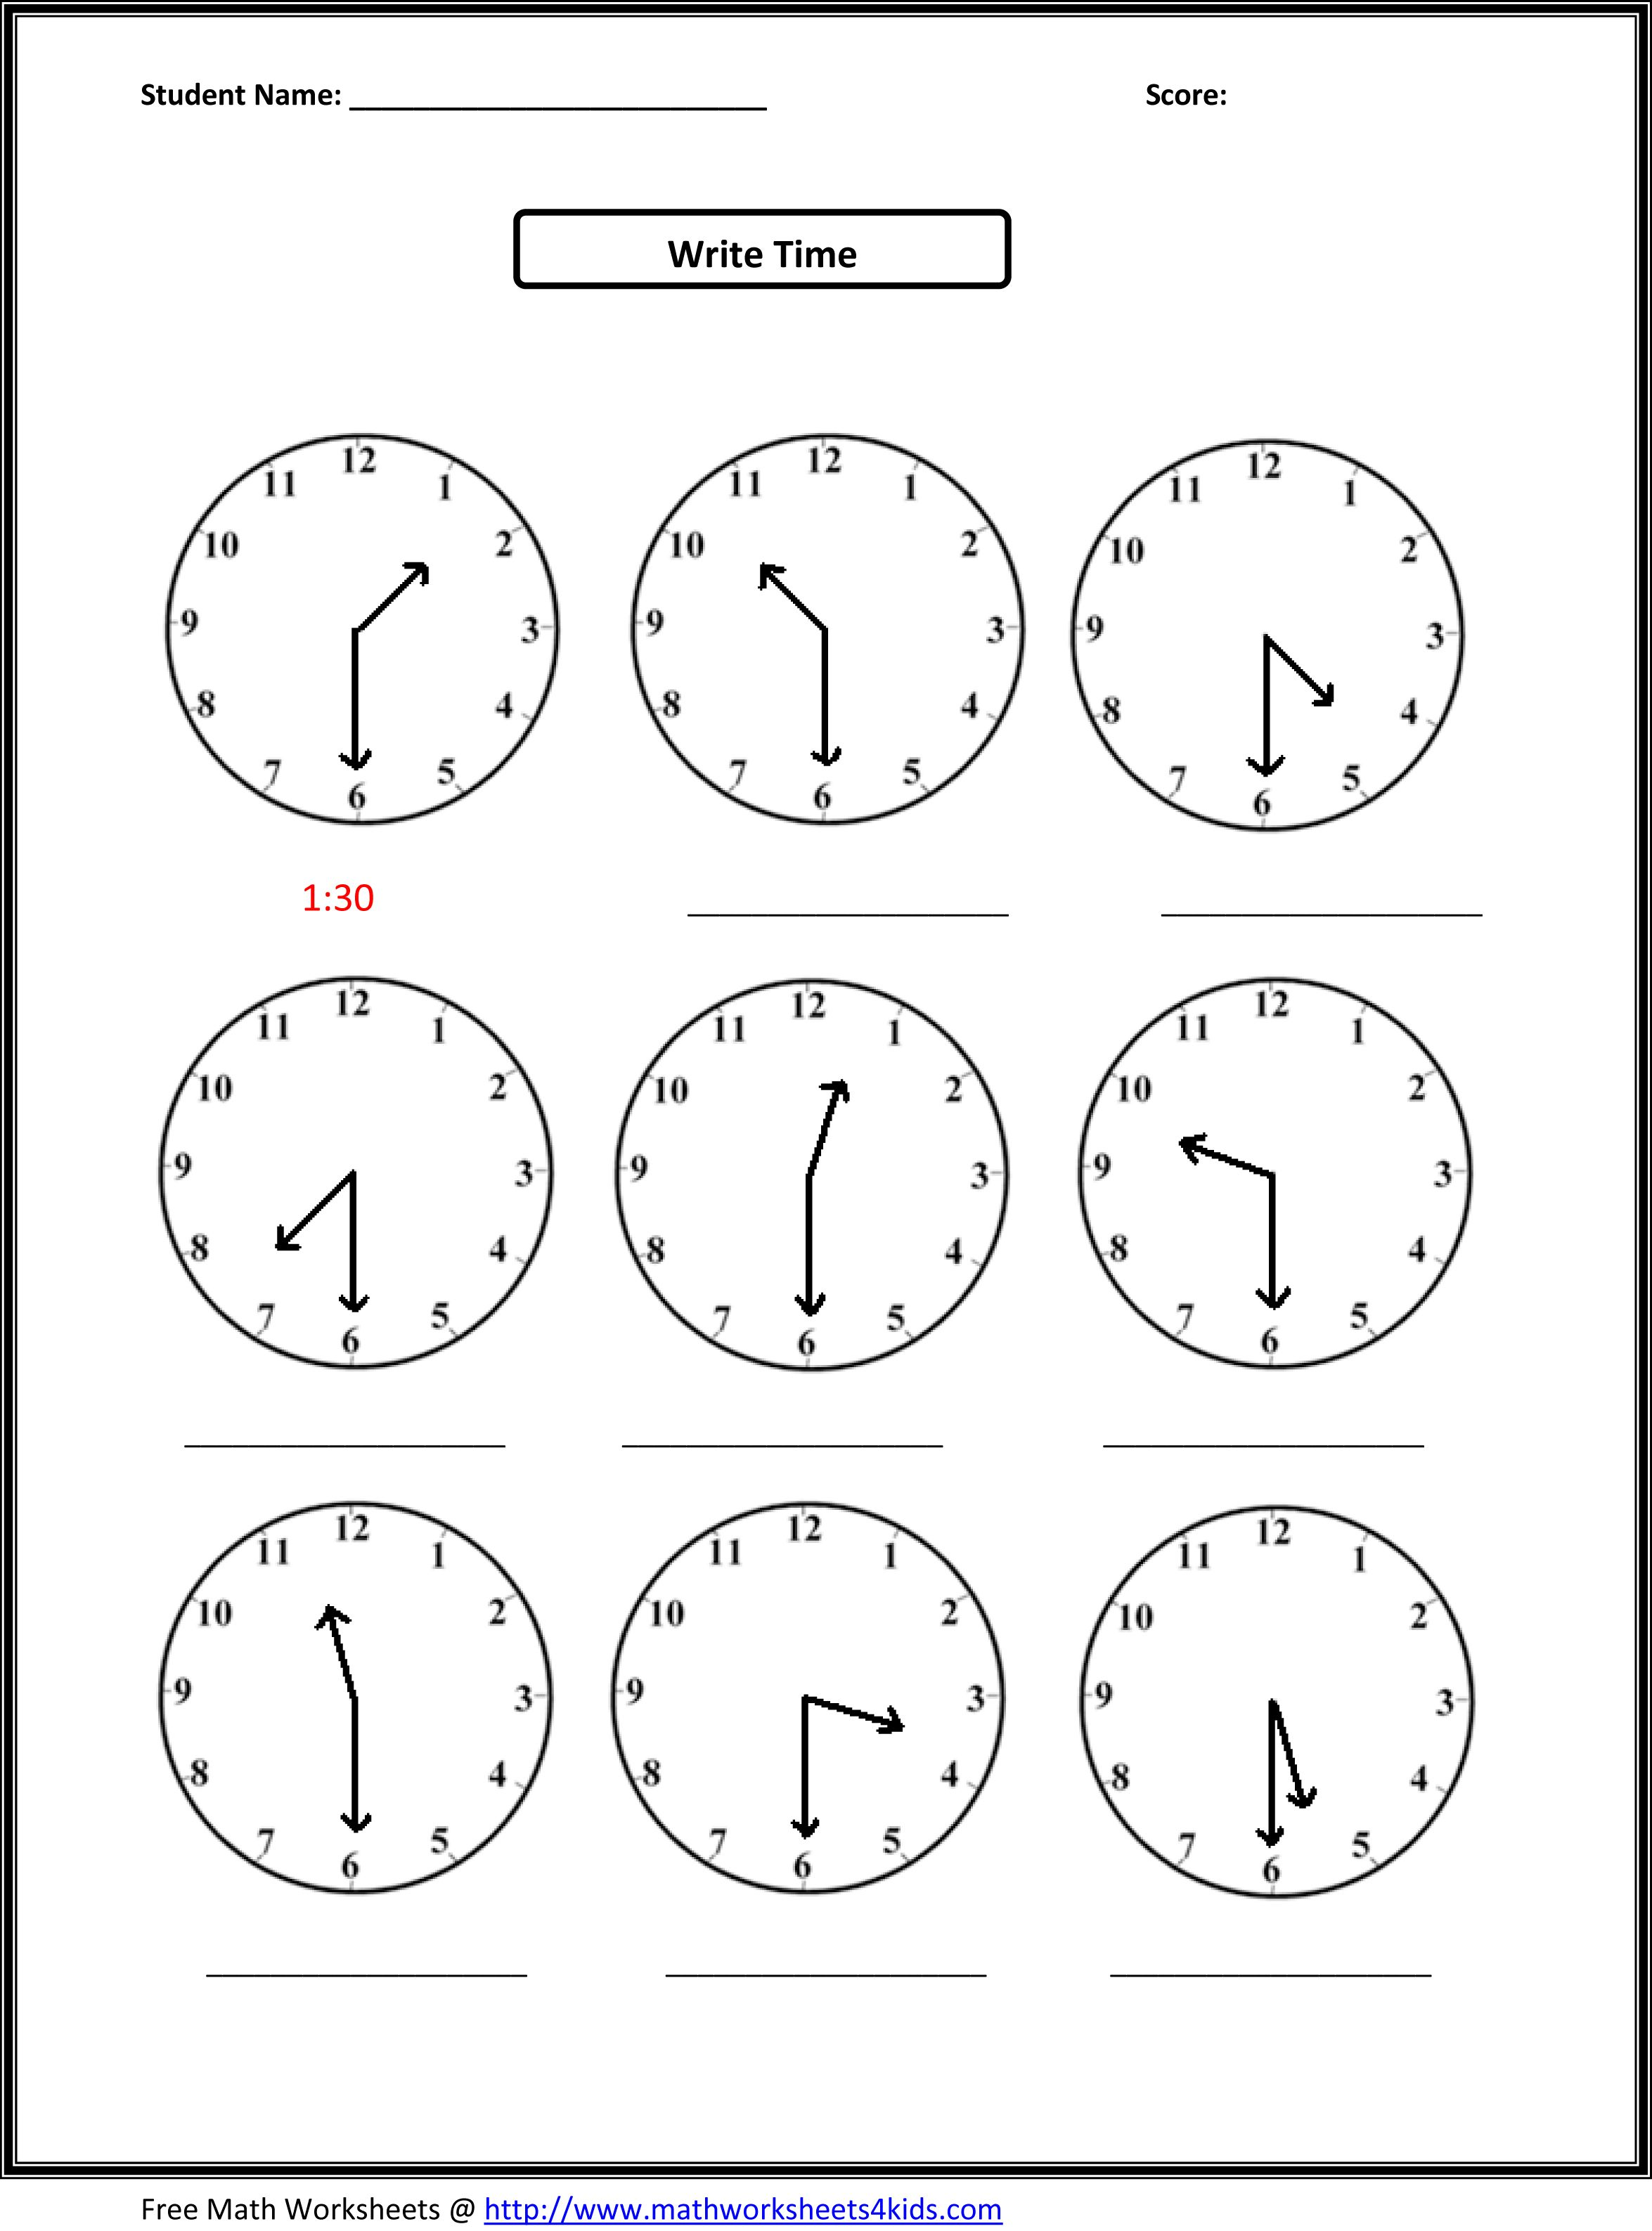 Proatmealus  Wonderful Worksheet On Time For Grade   Reocurent With Entrancing Free Printable Telling Time Worksheets Nd Grade  Reocurent With Captivating  Pillars Of Character Worksheets Also Sas Import Excel Worksheet In Addition Parallel Lines Geometry Worksheet And Xml Worksheet As Well As Worksheet On Plant And Animal Cells Additionally Near Doubles Worksheet From Reocurentcom With Proatmealus  Entrancing Worksheet On Time For Grade   Reocurent With Captivating Free Printable Telling Time Worksheets Nd Grade  Reocurent And Wonderful  Pillars Of Character Worksheets Also Sas Import Excel Worksheet In Addition Parallel Lines Geometry Worksheet From Reocurentcom